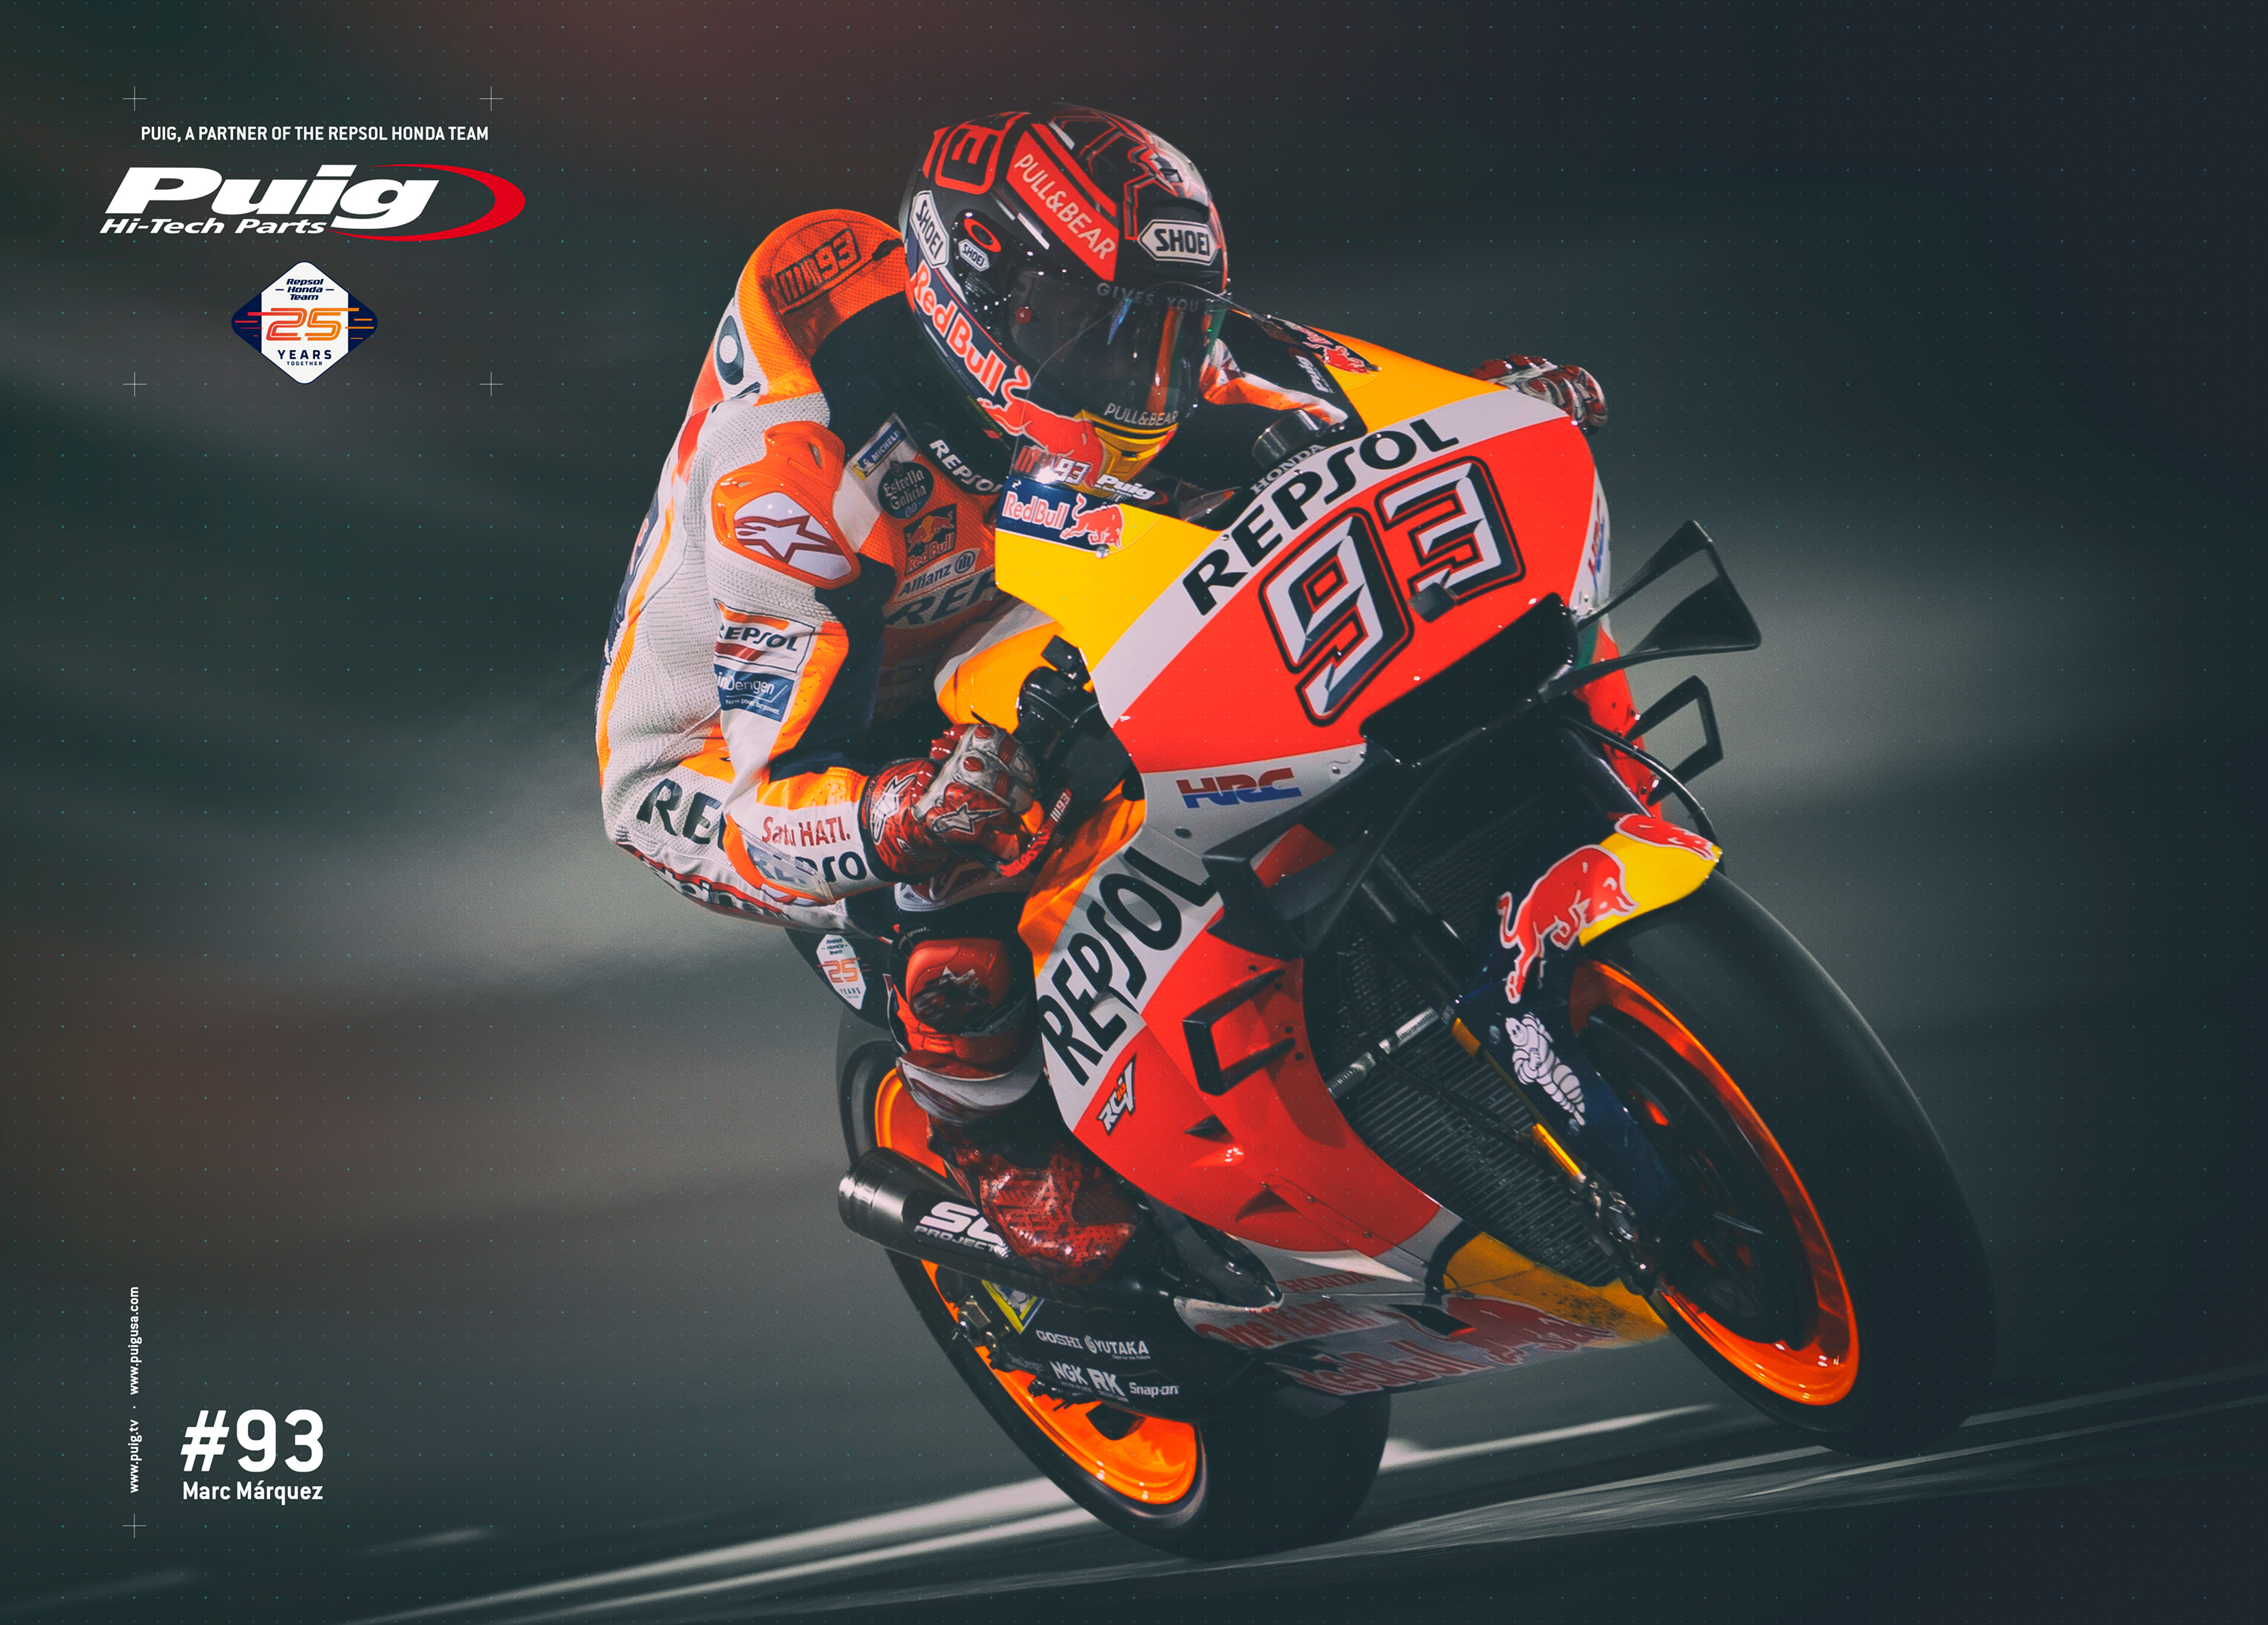 Wallpapers Motoplastic Puig